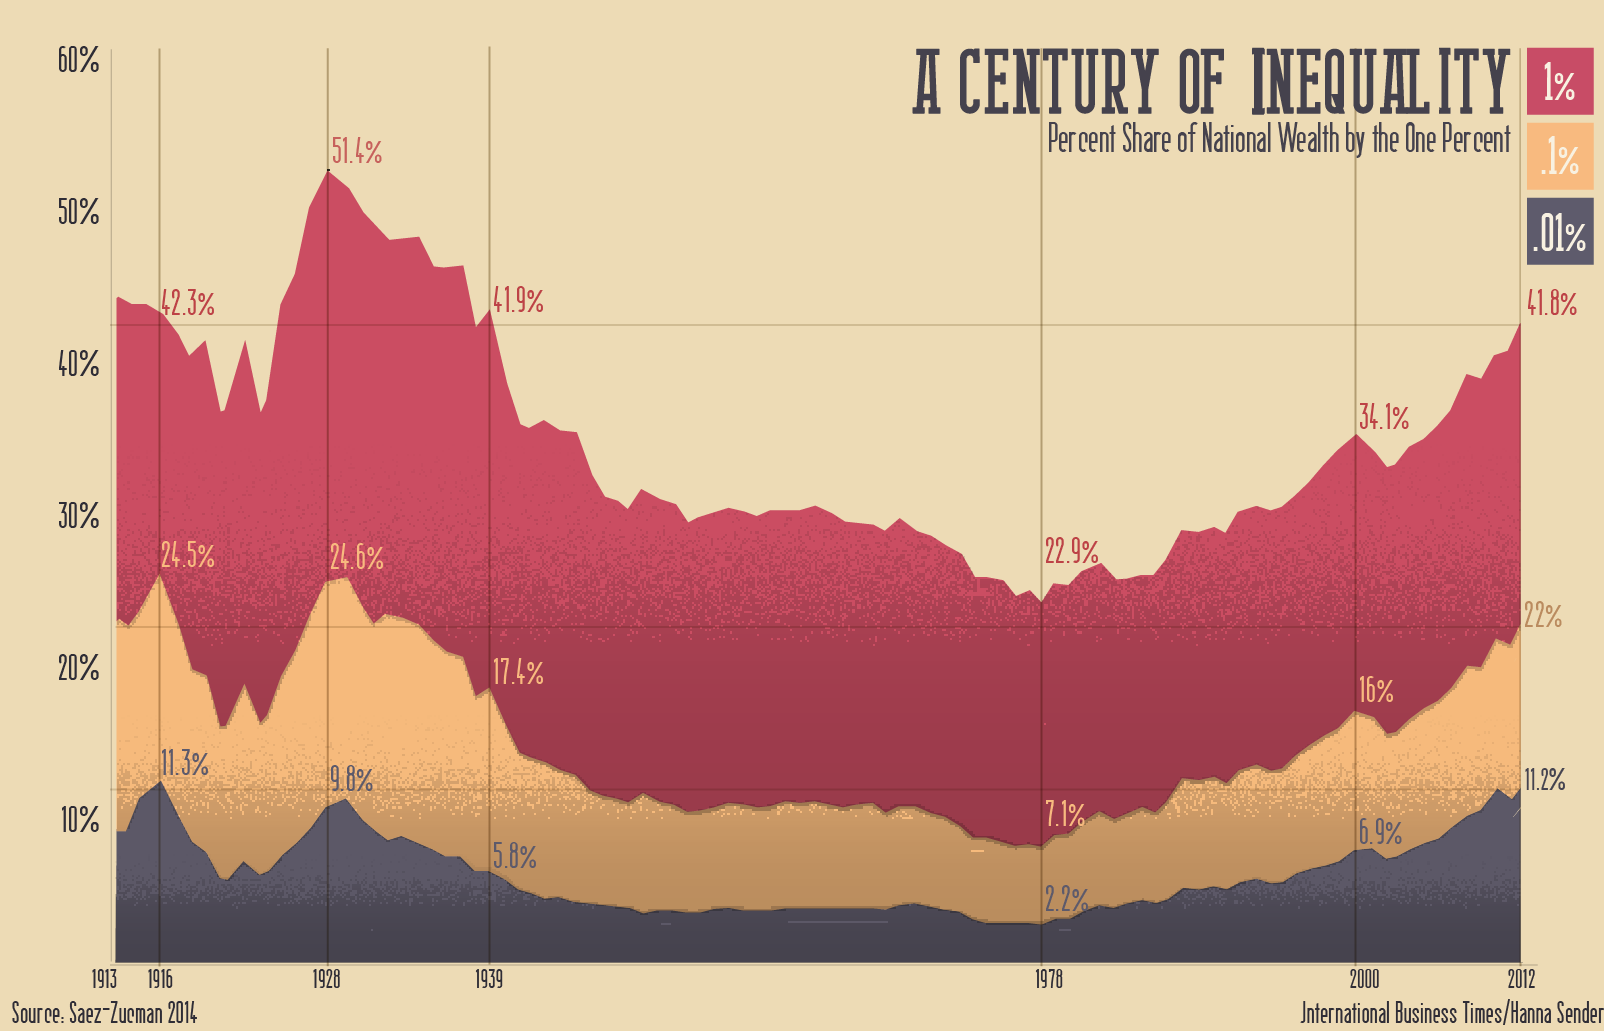 Century of Inequality One Percent Share of Total Wealth Graphic